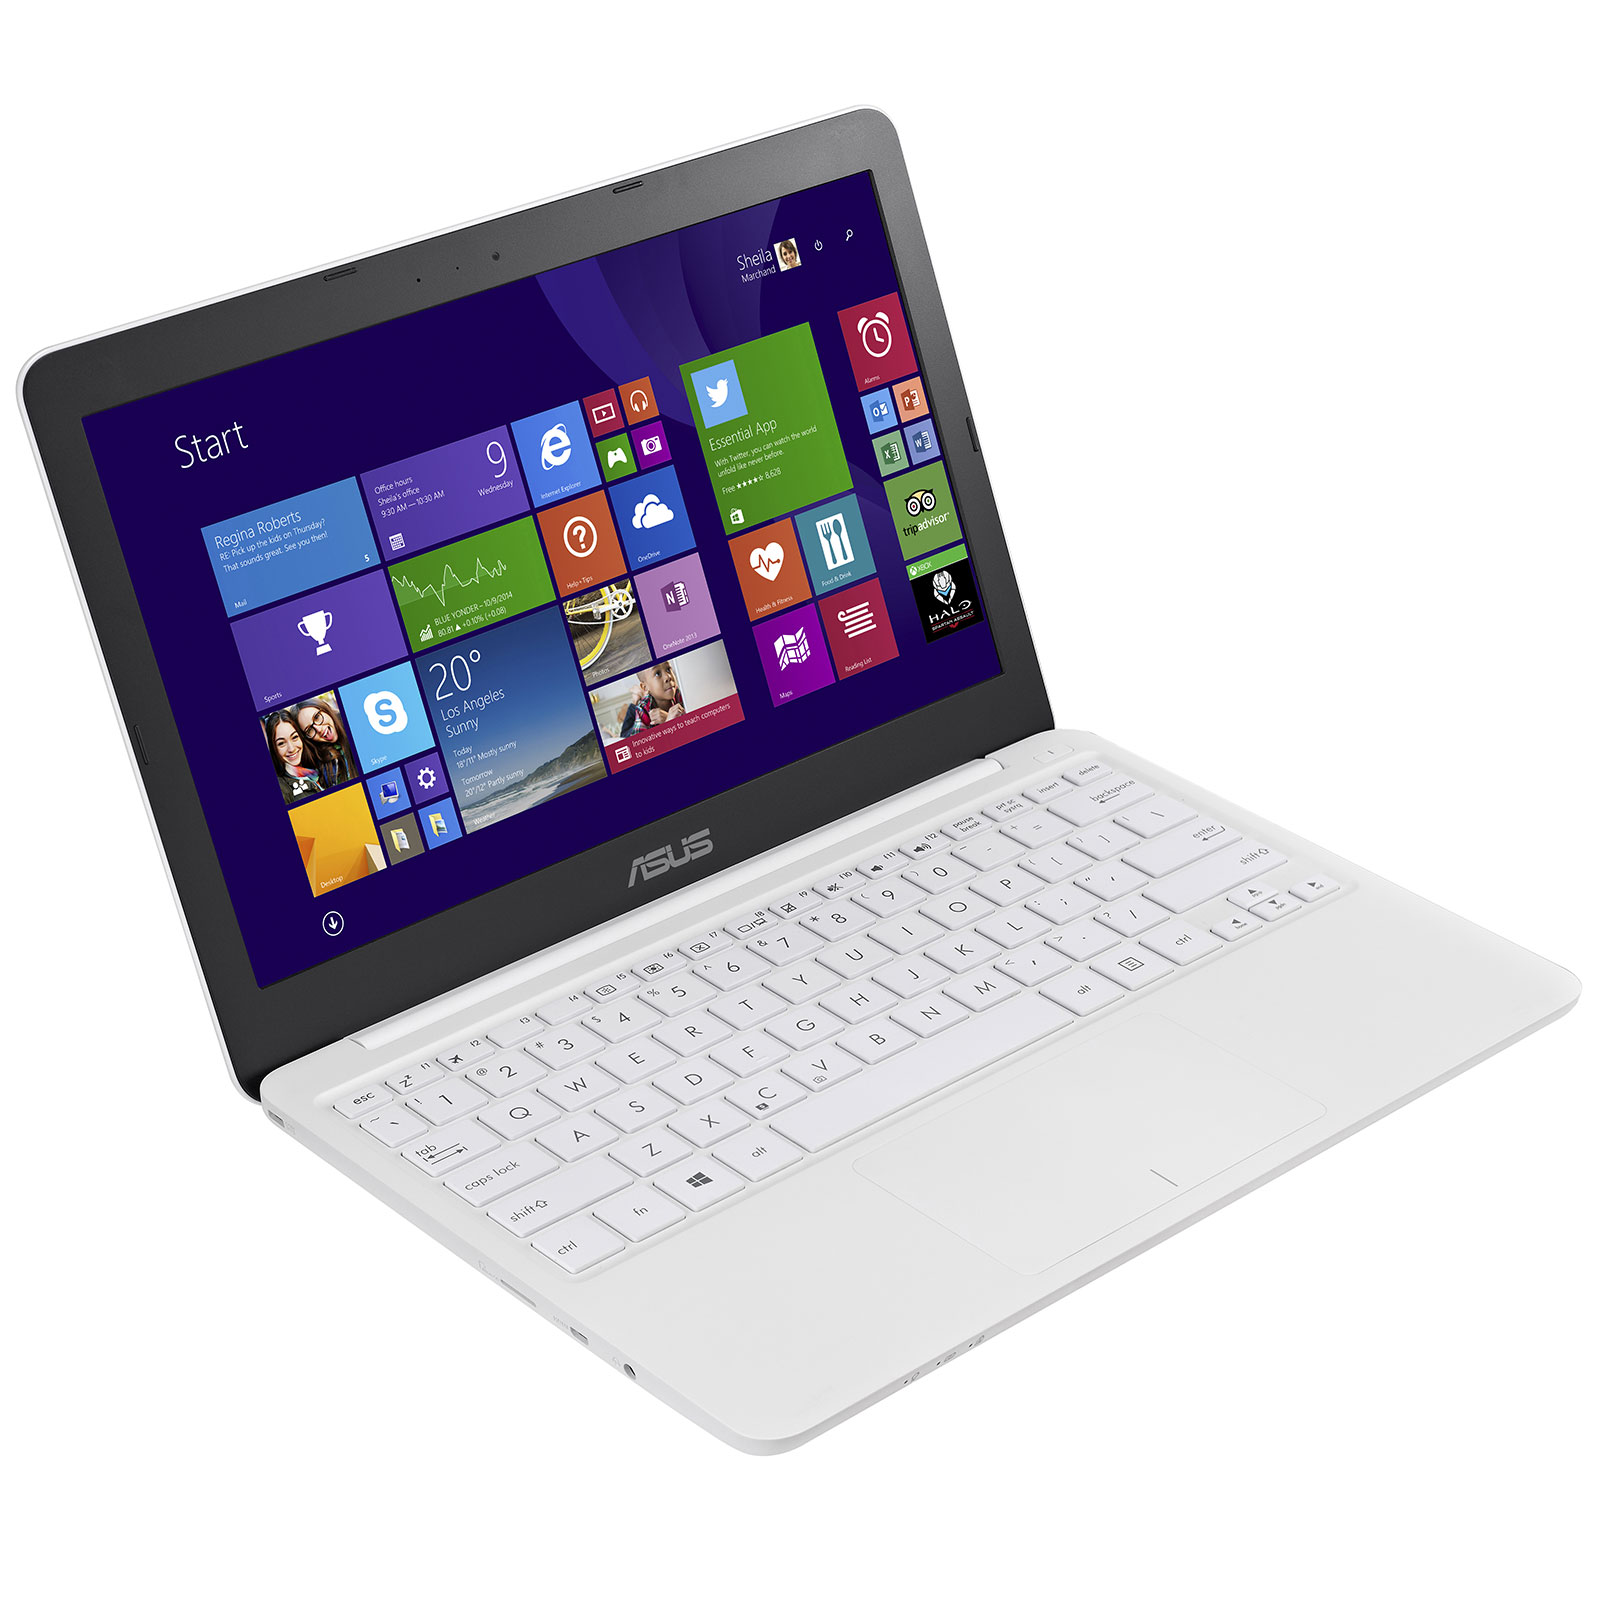 asus eeebook x205ta bing fd005bs blanc pc portable asus sur. Black Bedroom Furniture Sets. Home Design Ideas